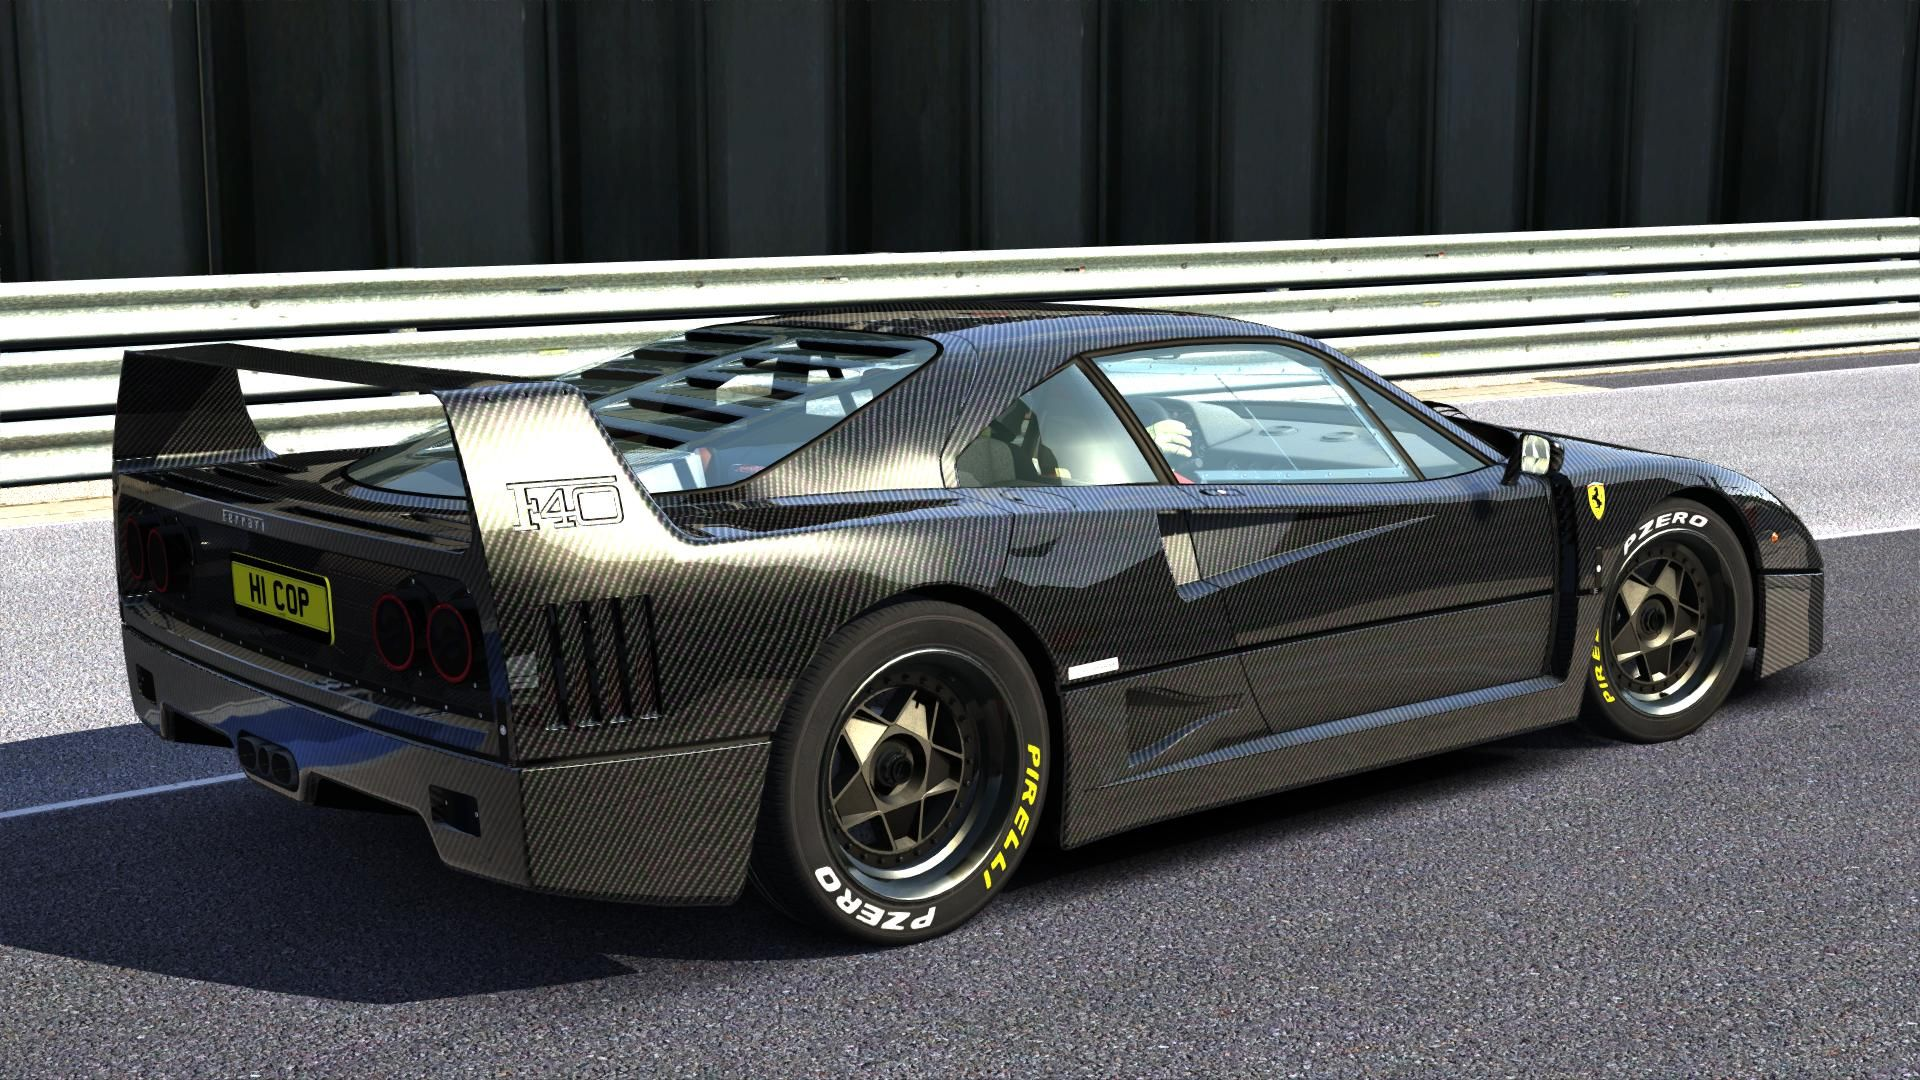 Assetto Corsa V1 0 Is Now Out Assetto Corsa Mods